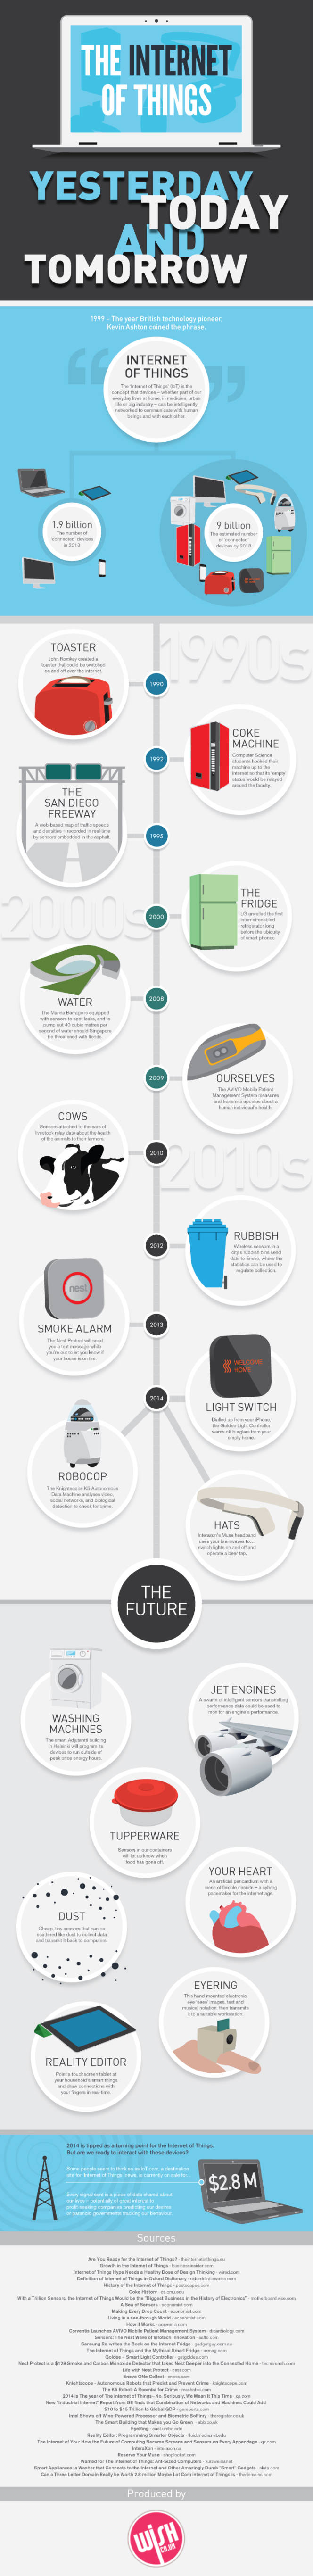 The-Internet-of-Things infographic